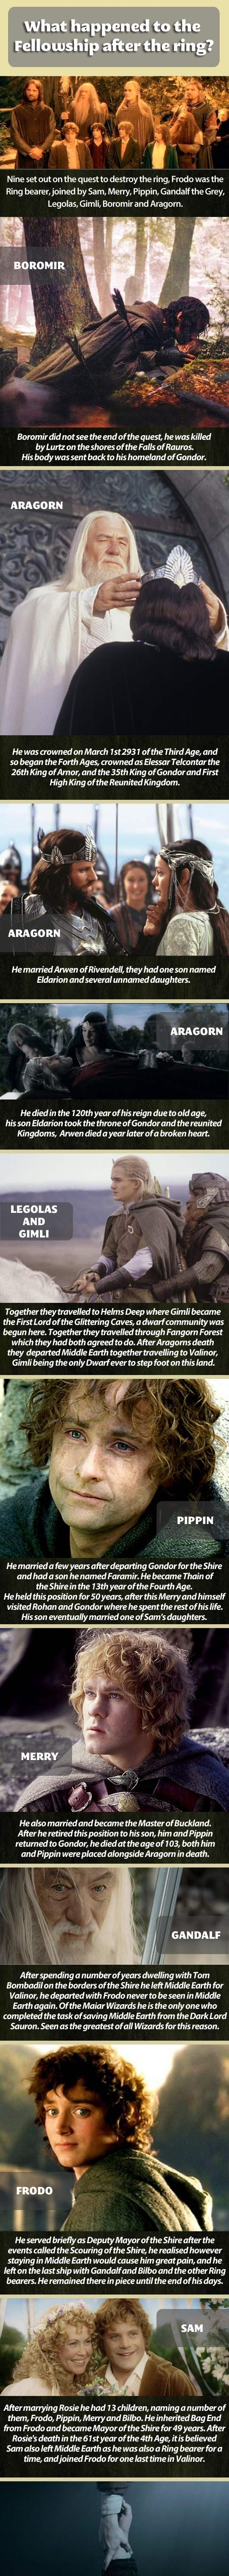 65 Best Jrr Tolkiens The Hobbit Lord Of The Rings Images On